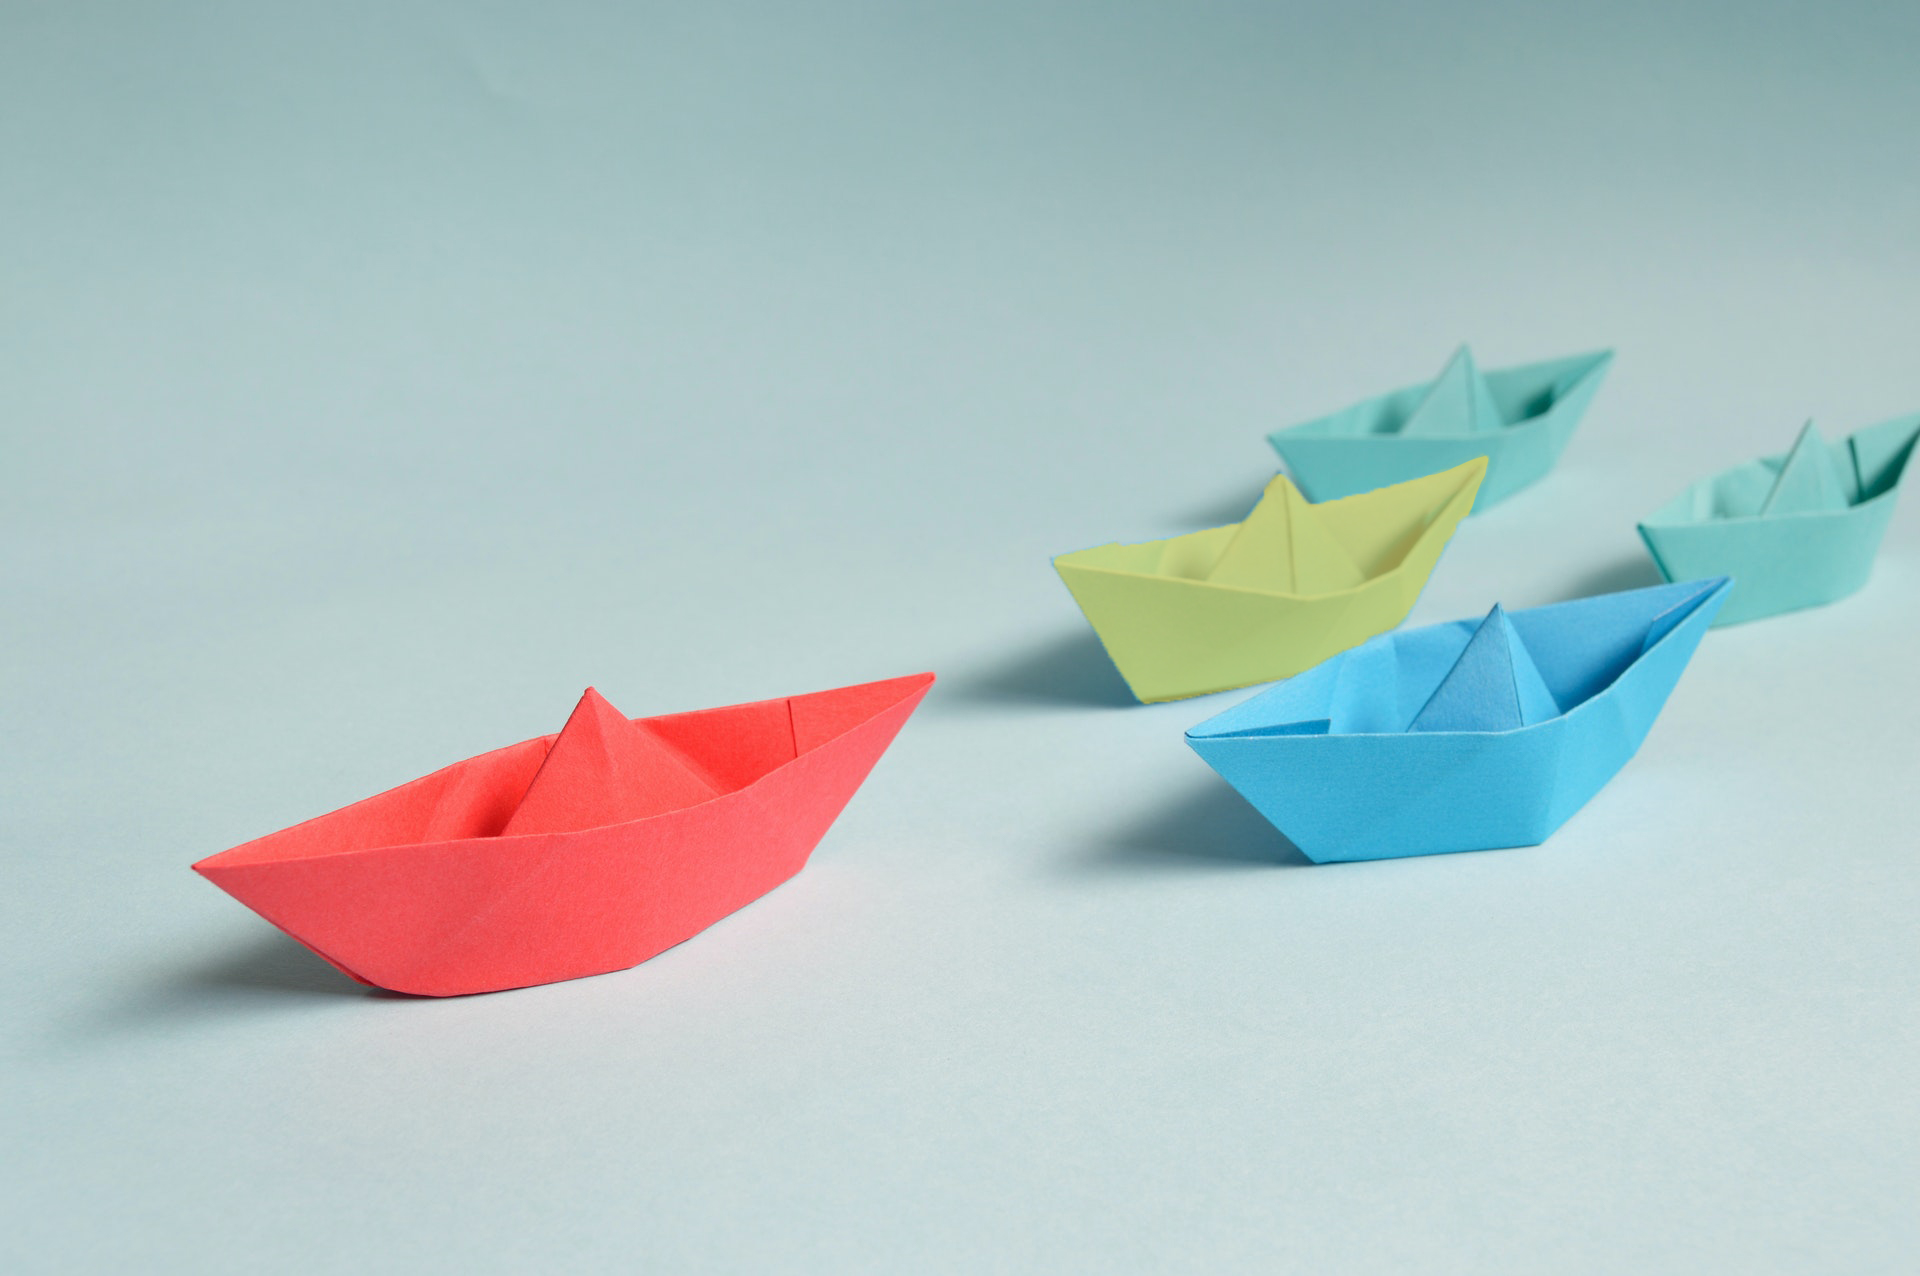 5 paper ships in red, yellow, blue and green navigating on a plain background - resilient leadership development programs help organizations navigate change with stronger team management